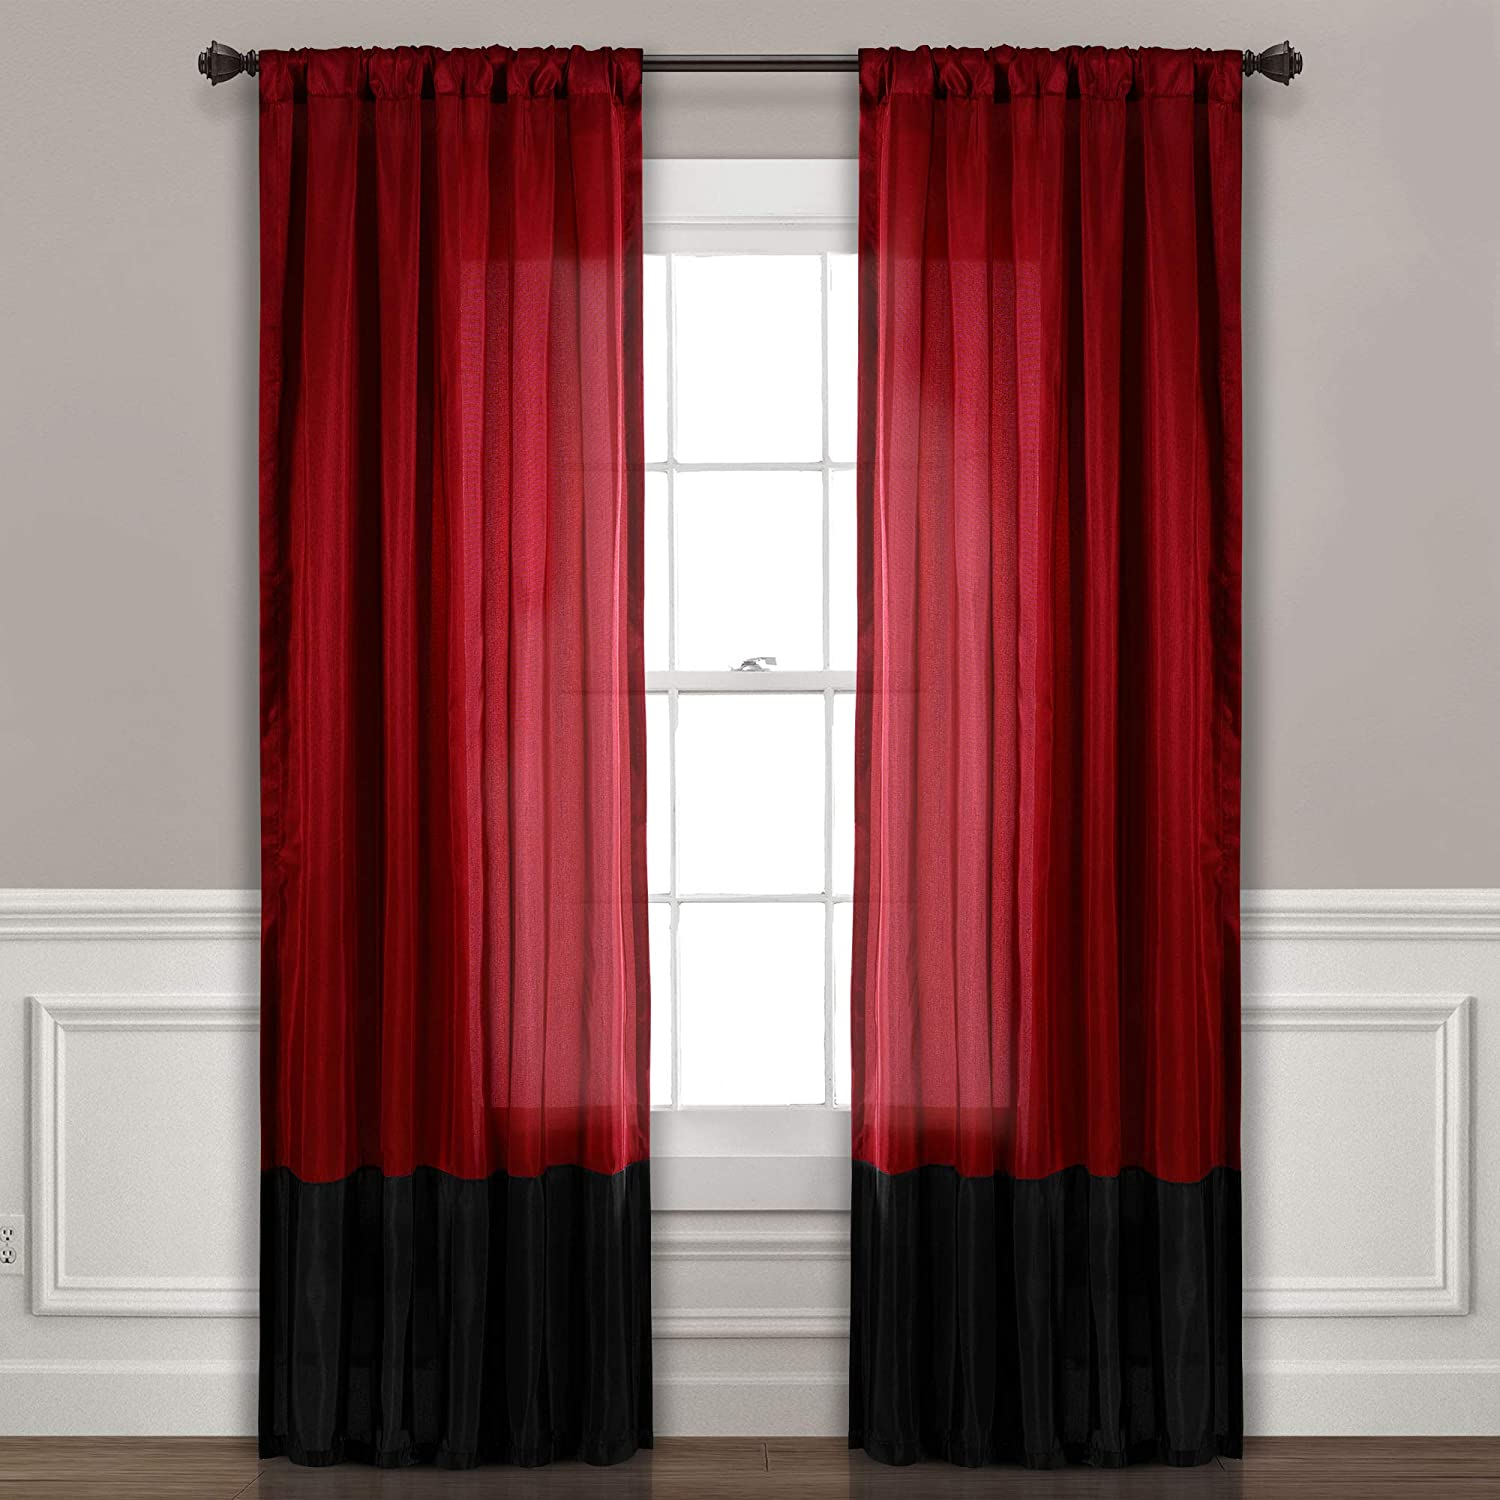 "Lush Decor Milione Fiori Window Curtains Panel Set for Living, Dining Room, Bedroom (Pair), 84"" x 42"" Red/Black"